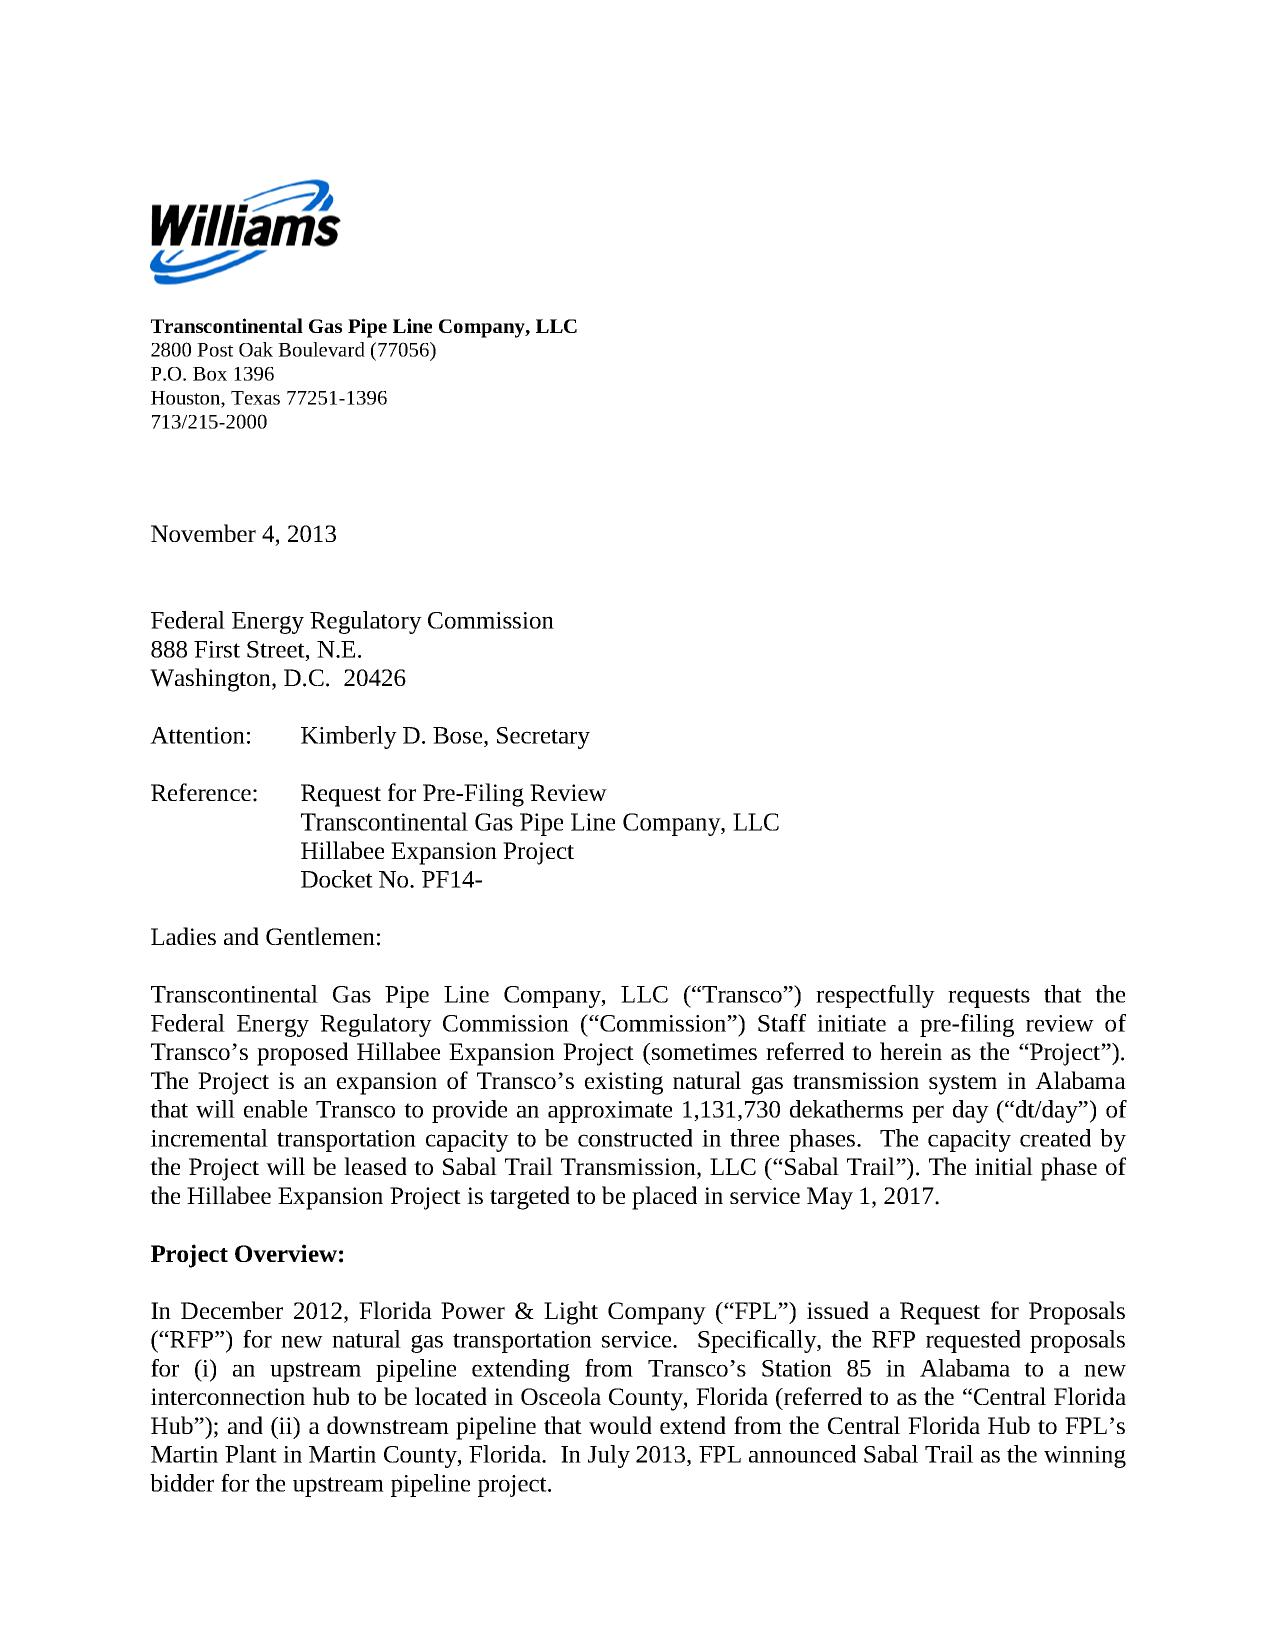 project overview in request for pre filing review by transcontinental gas pipe line - Cover Letter Review